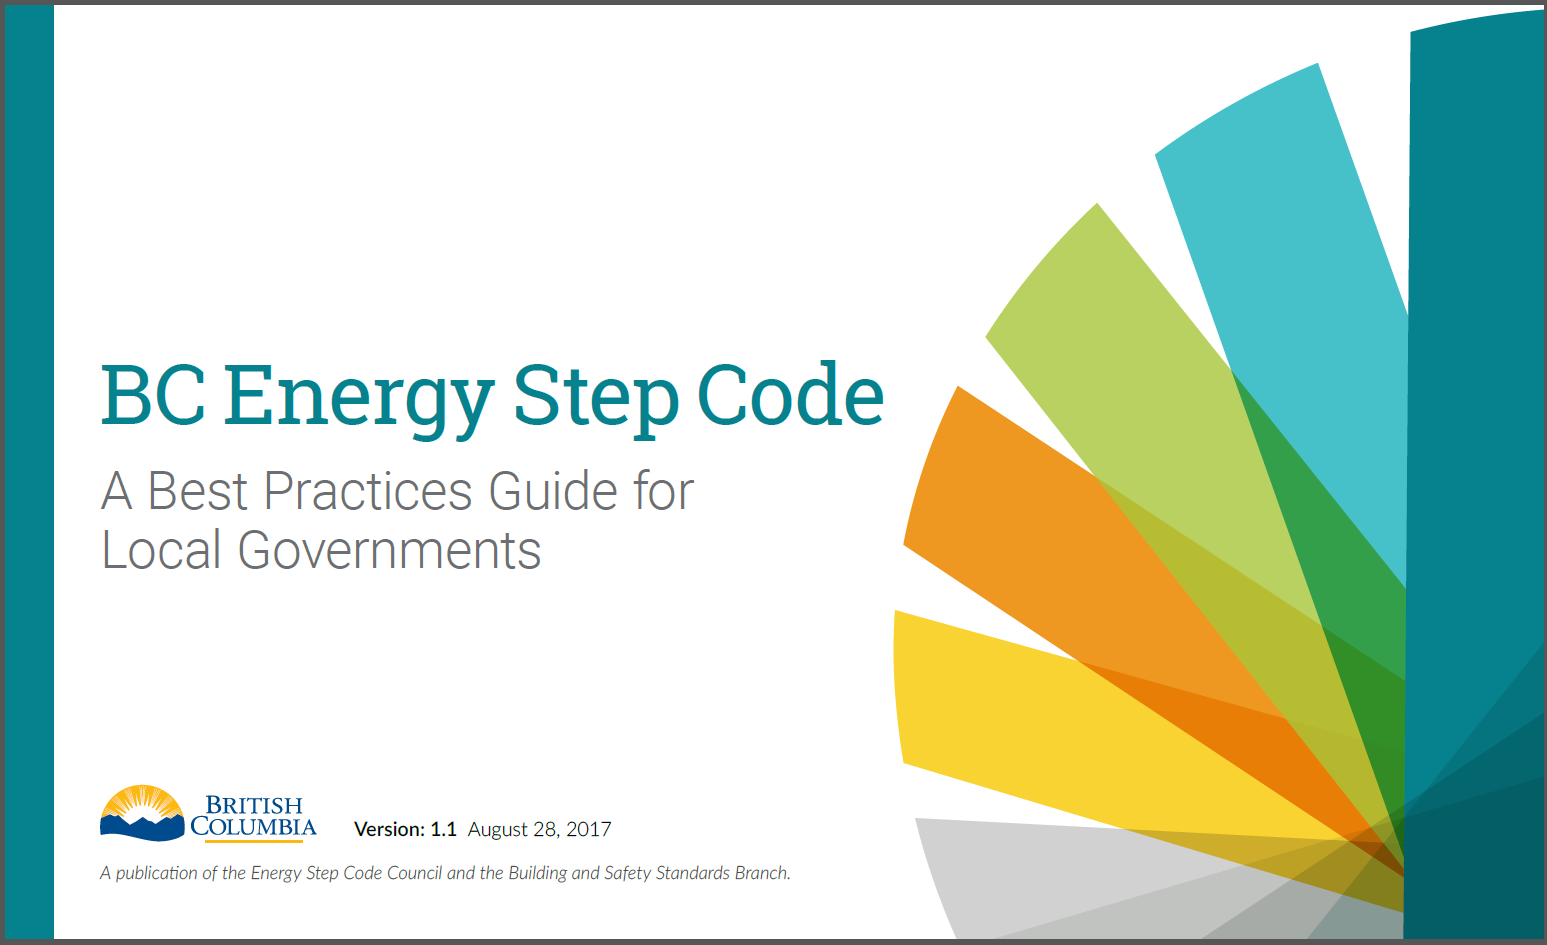 Cover of the BC Energy Step Code Best Practices Guide